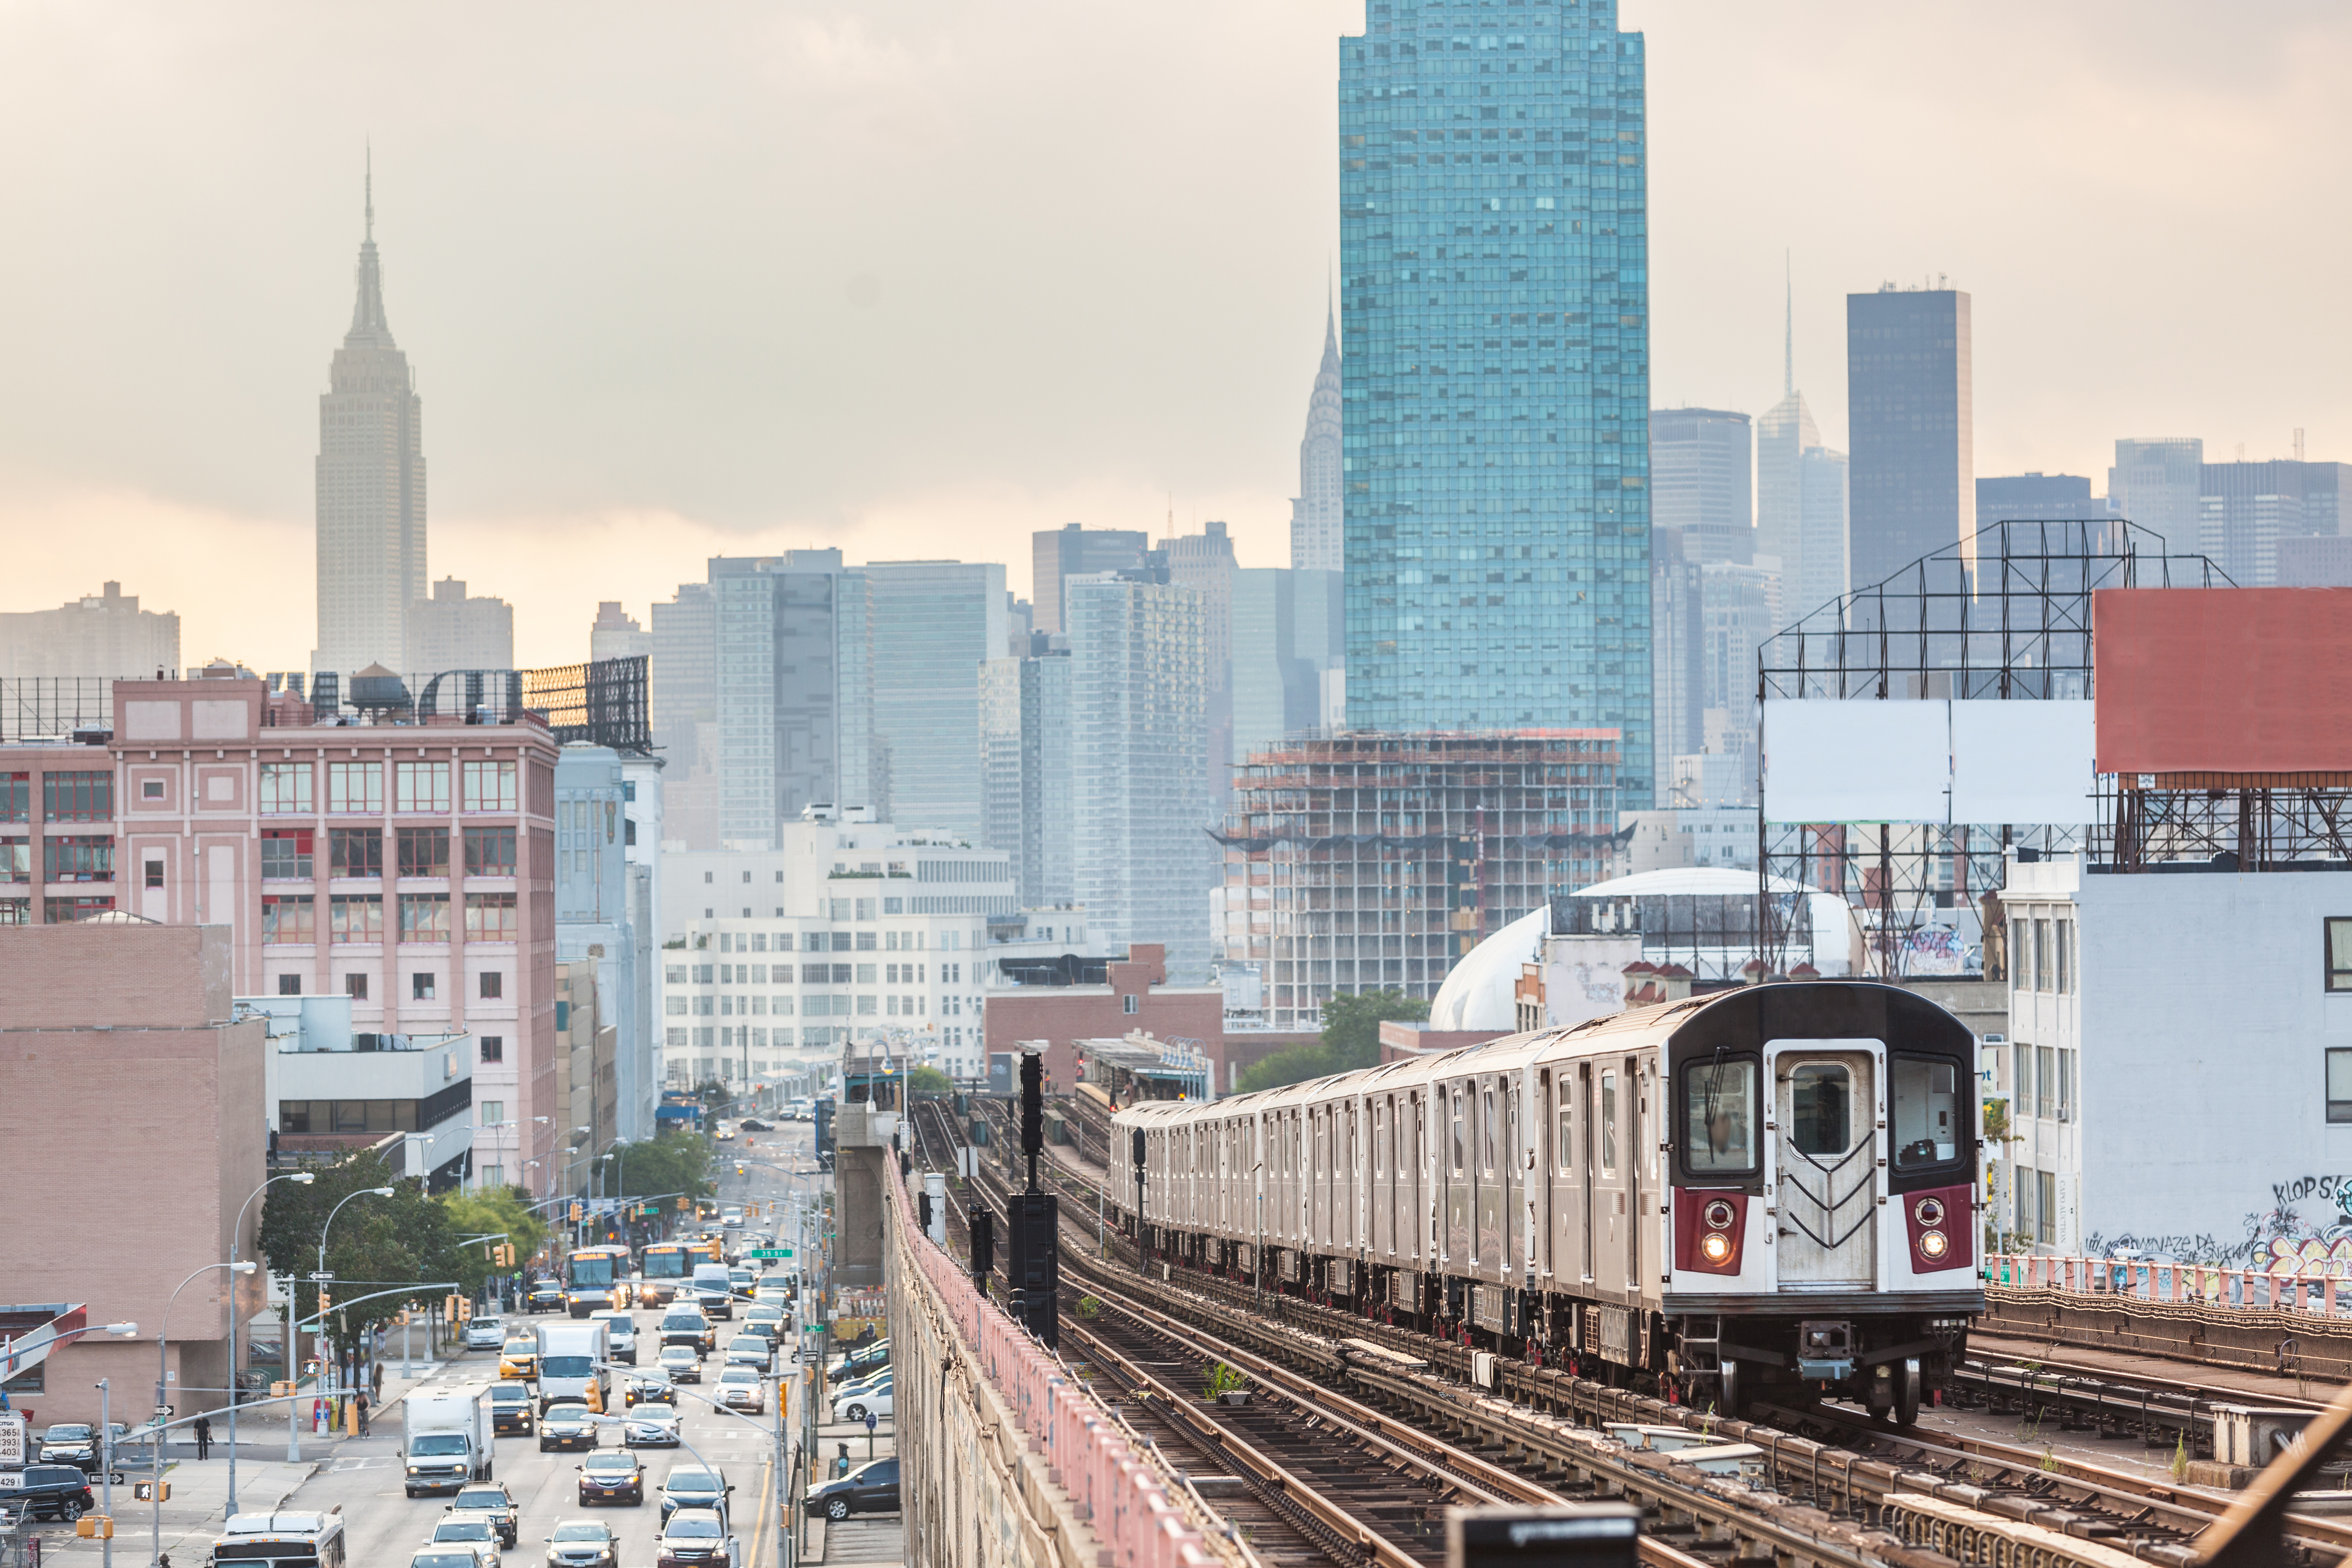 A subway travels above ground in NYC, the Manhattan skyline can be seen at the back.